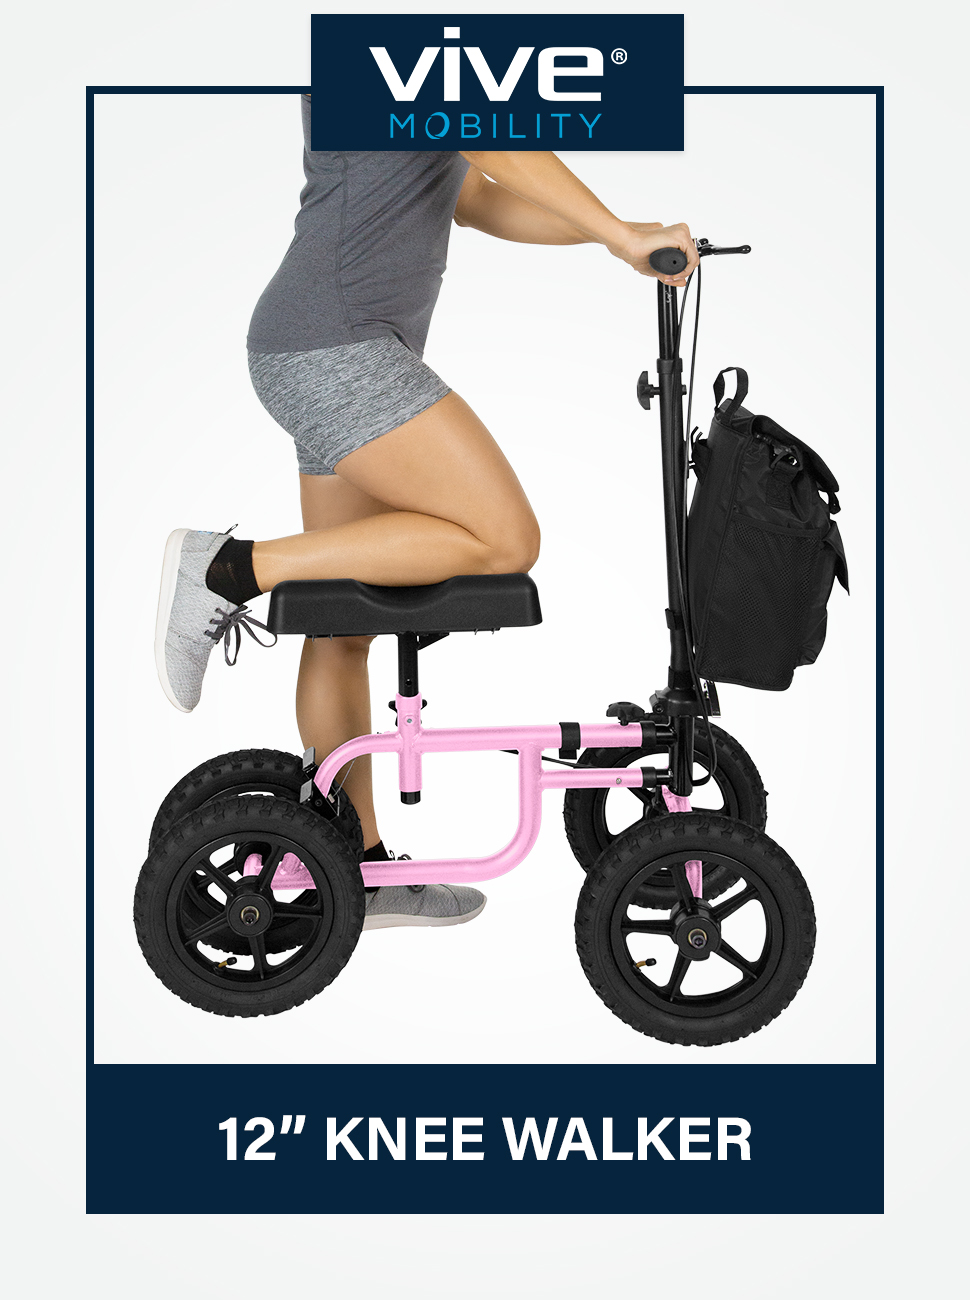 Vive Mobility Knee Walker Stearable Scooter Broken Leg, Foot, Ankle Injuries - Kneeling Quad Roller